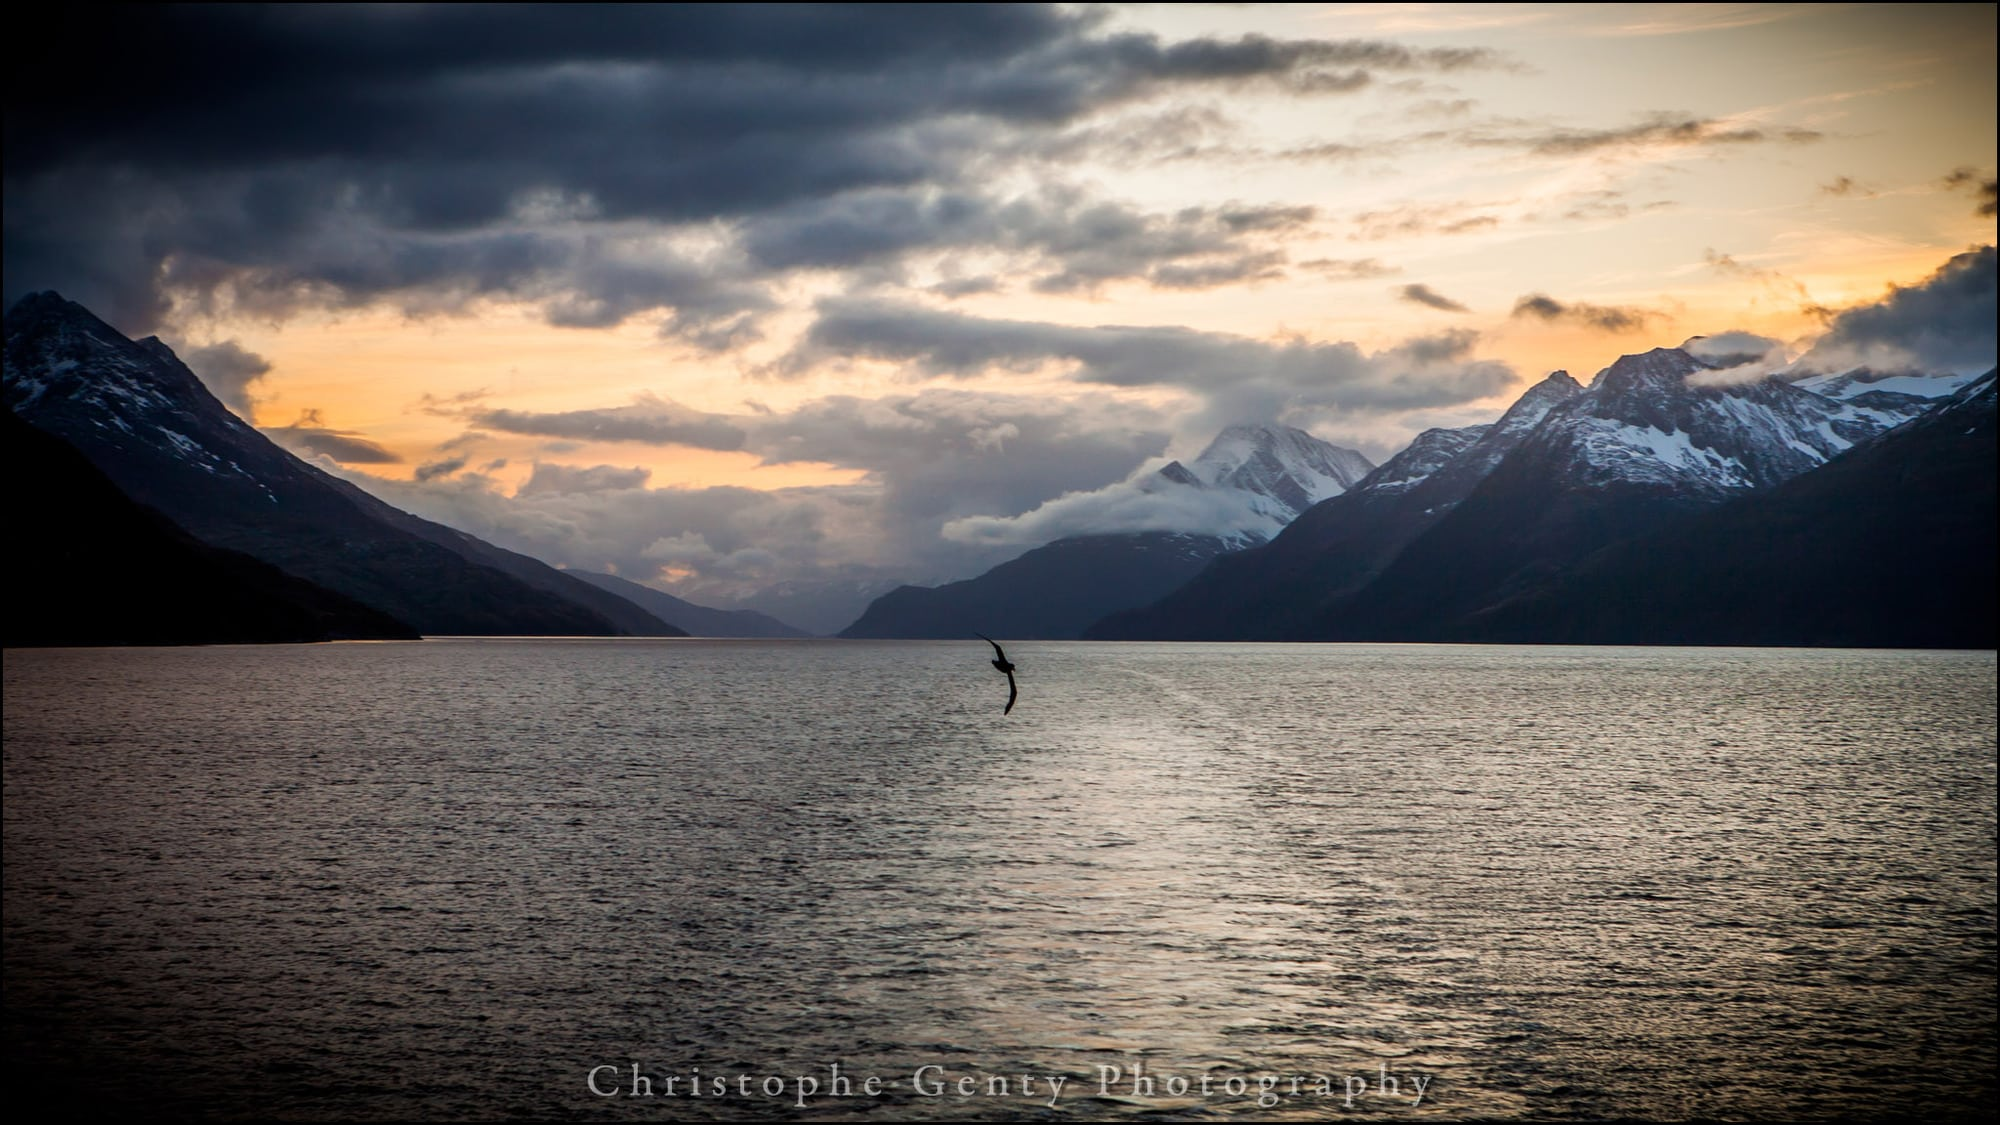 Sunrise on Tierra Del Fuego, Beagle Canal, Argentina - December 26, 2015